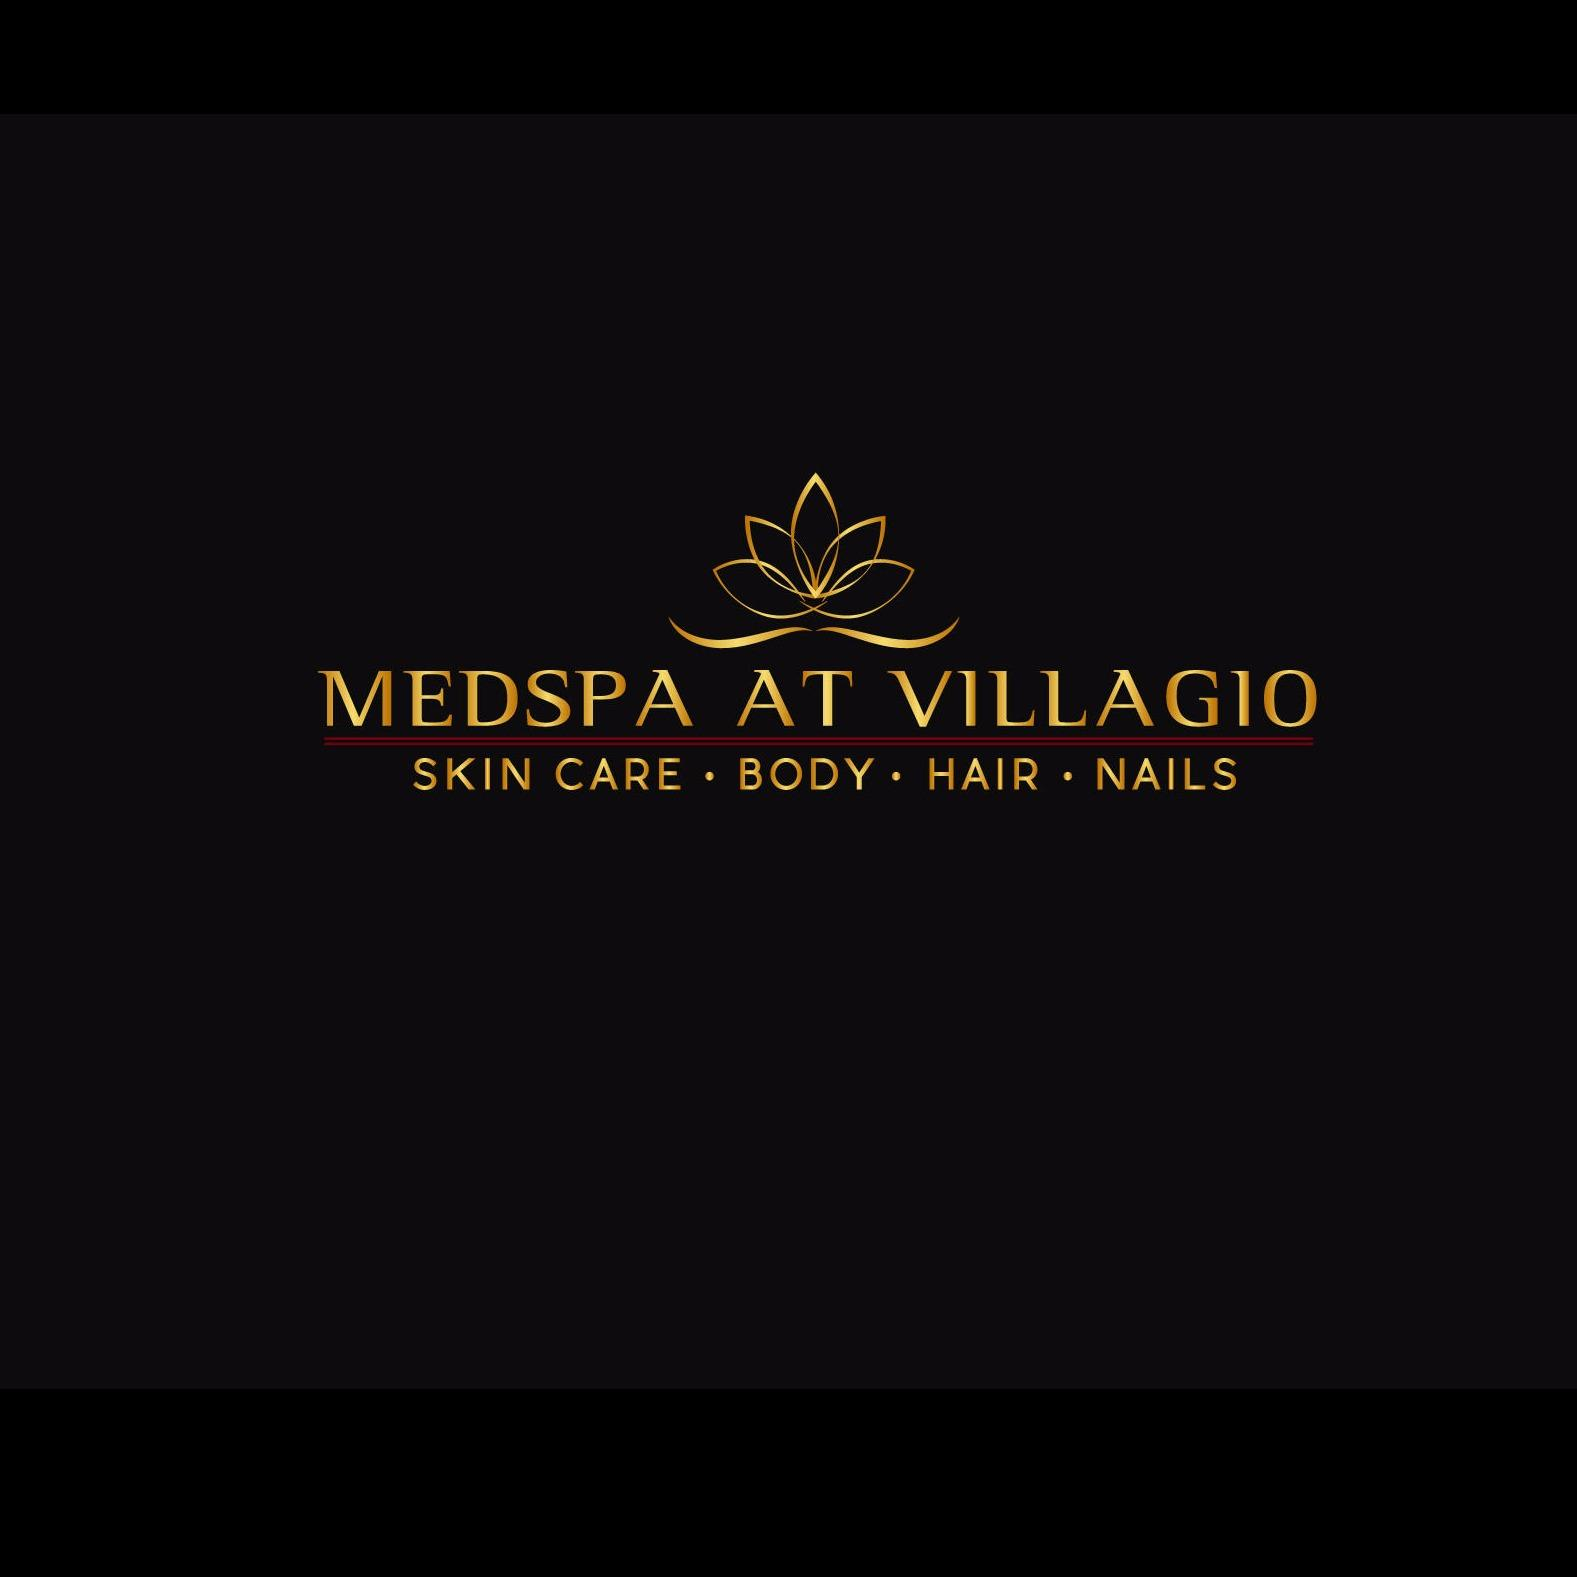 Medspa at Villagio